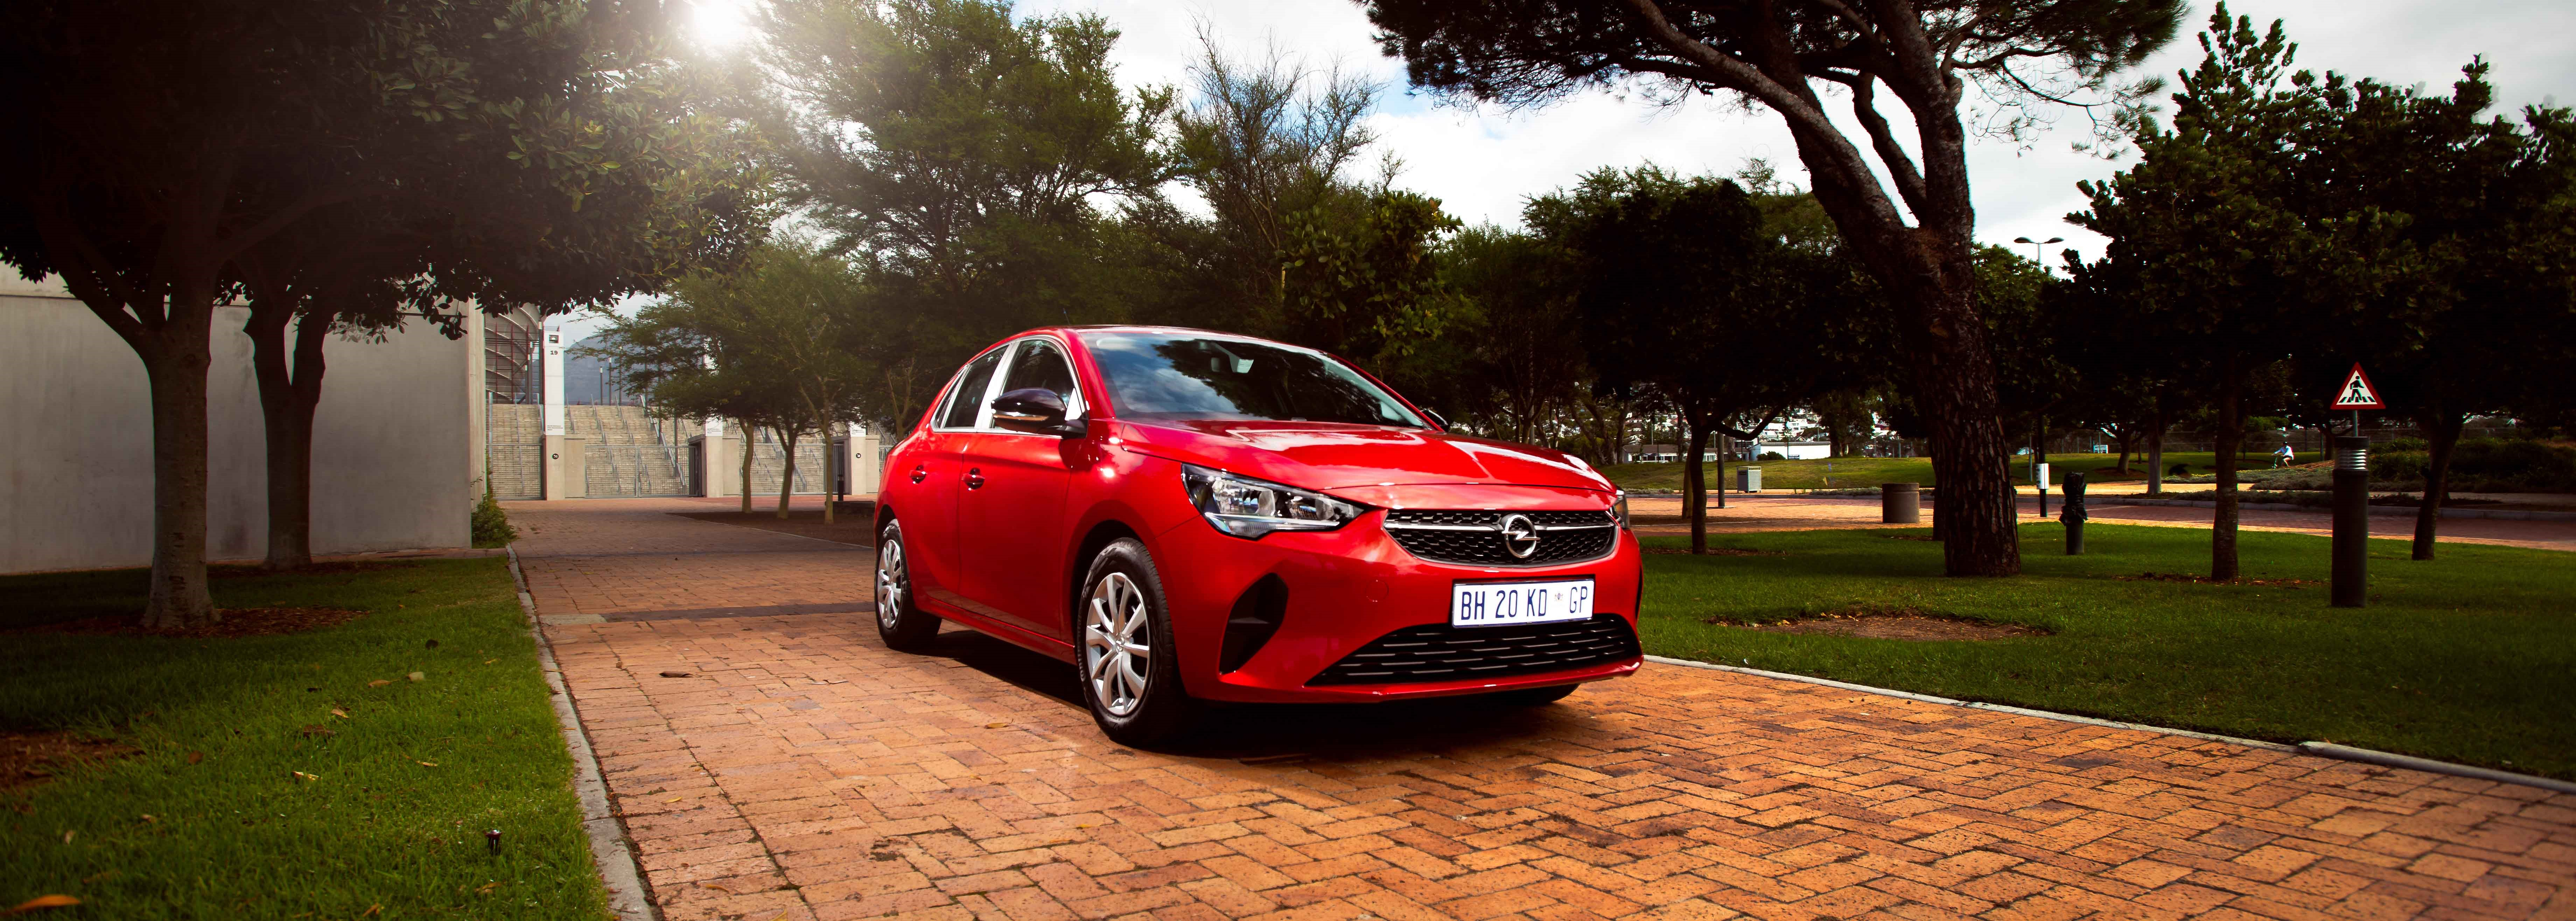 Opel vehicles in SA to be distributed by PCSA video-banner